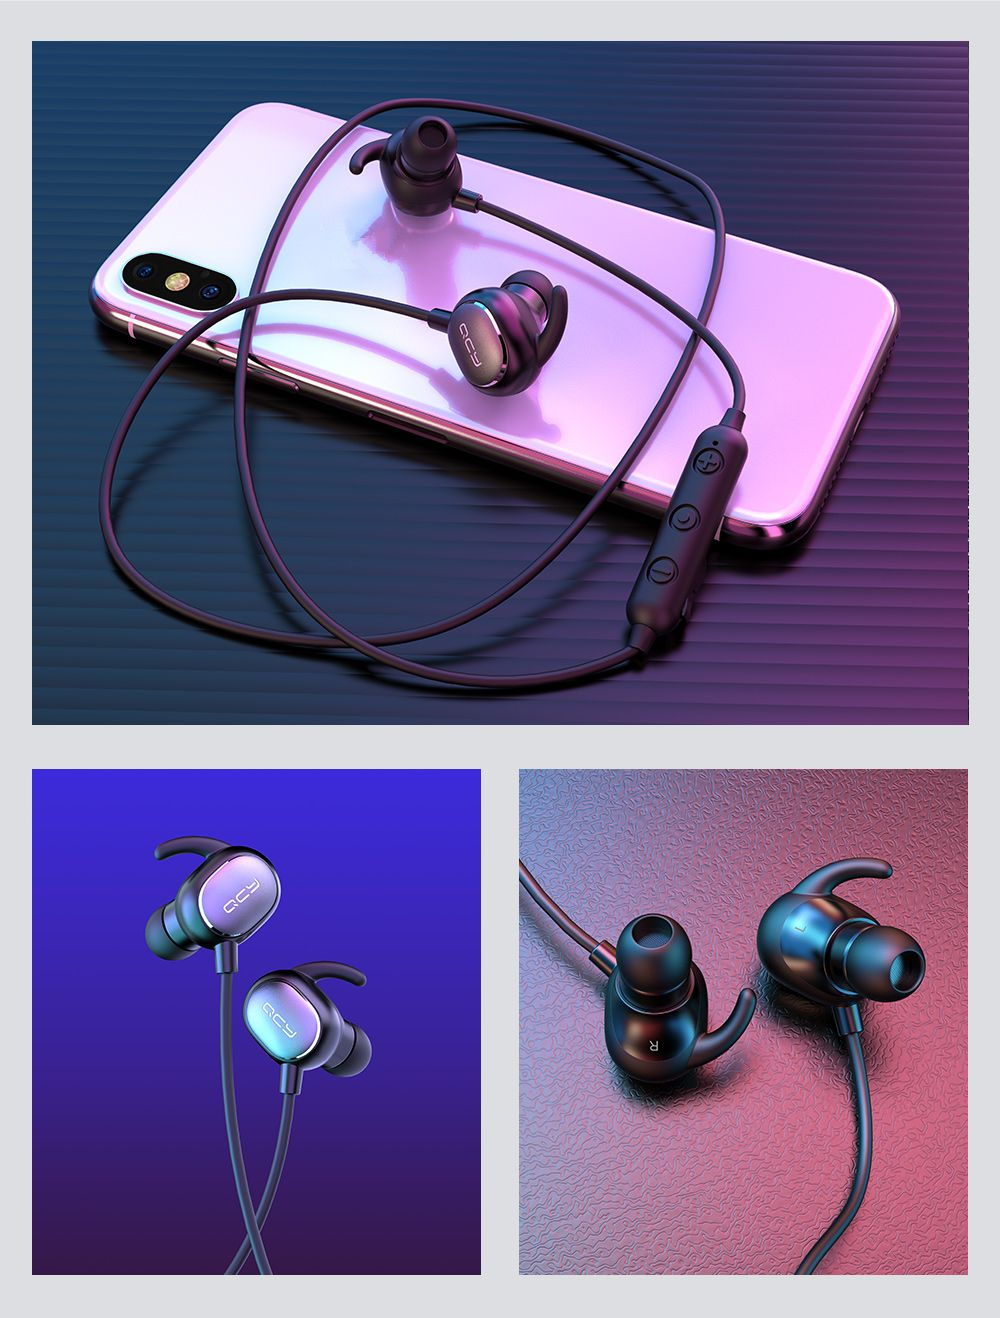 Qcy Qy19 Wireless Bluetooth 5 0 Earphones (7)